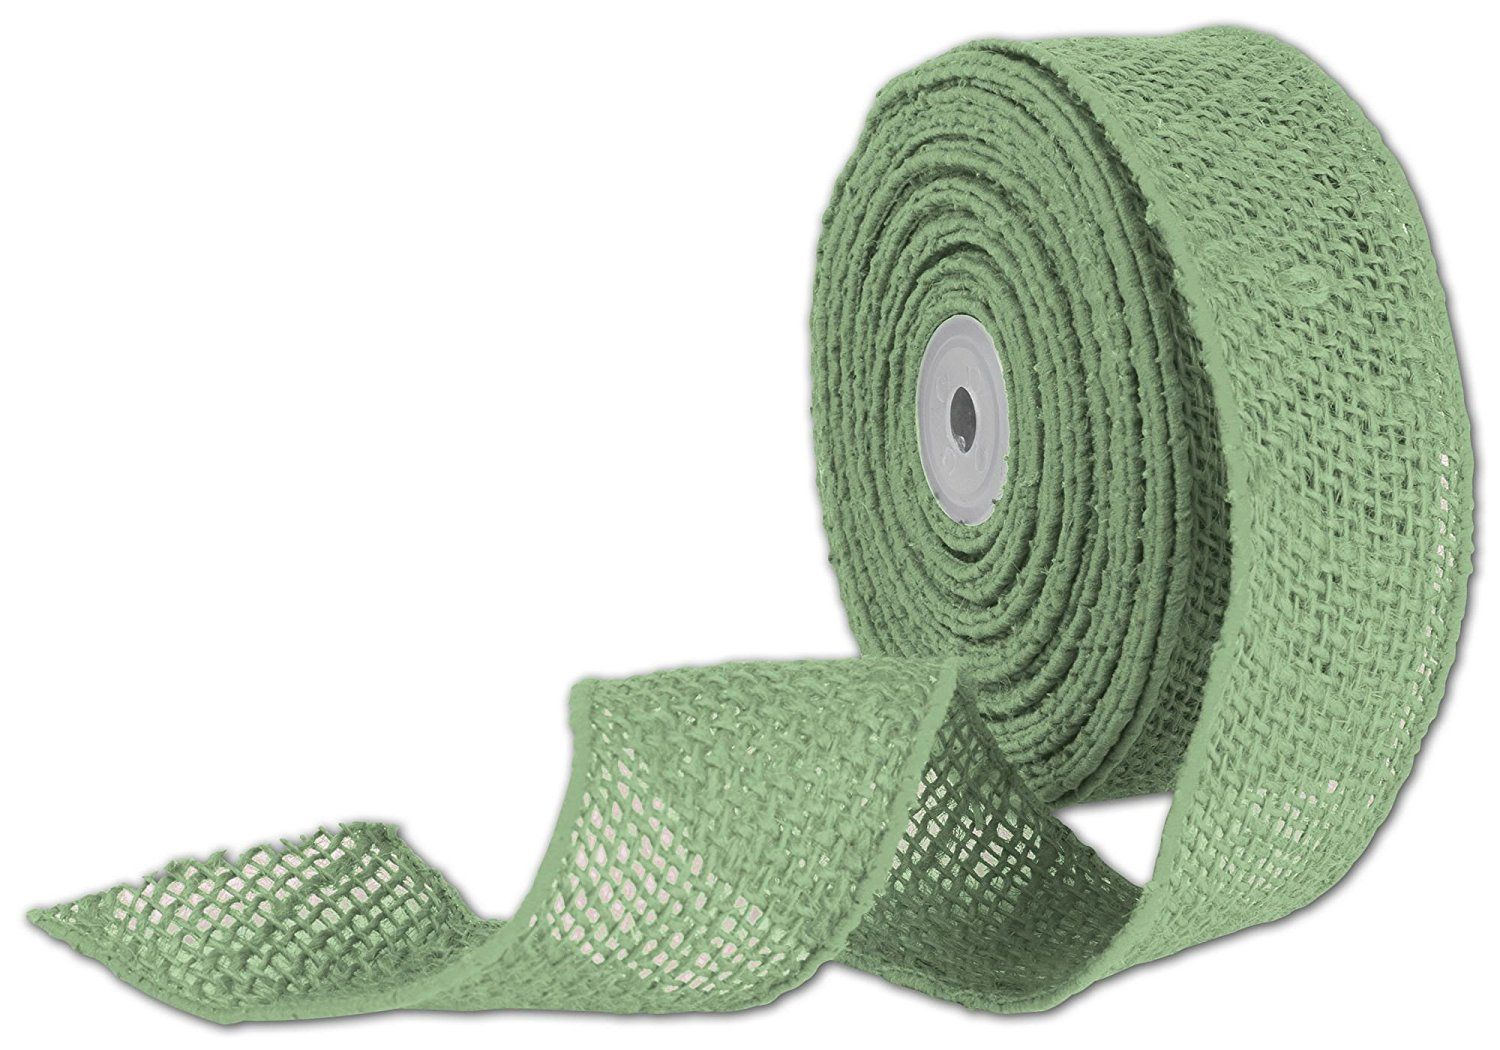 Ribbons Solid Color Green Wired Burlap Ribbon 2 X 10 Yds 1 Roll Bows Burlap 17 Details Can Be Found By Clicking Burlap Ribbon Burlap Gift Wrap Ribbon